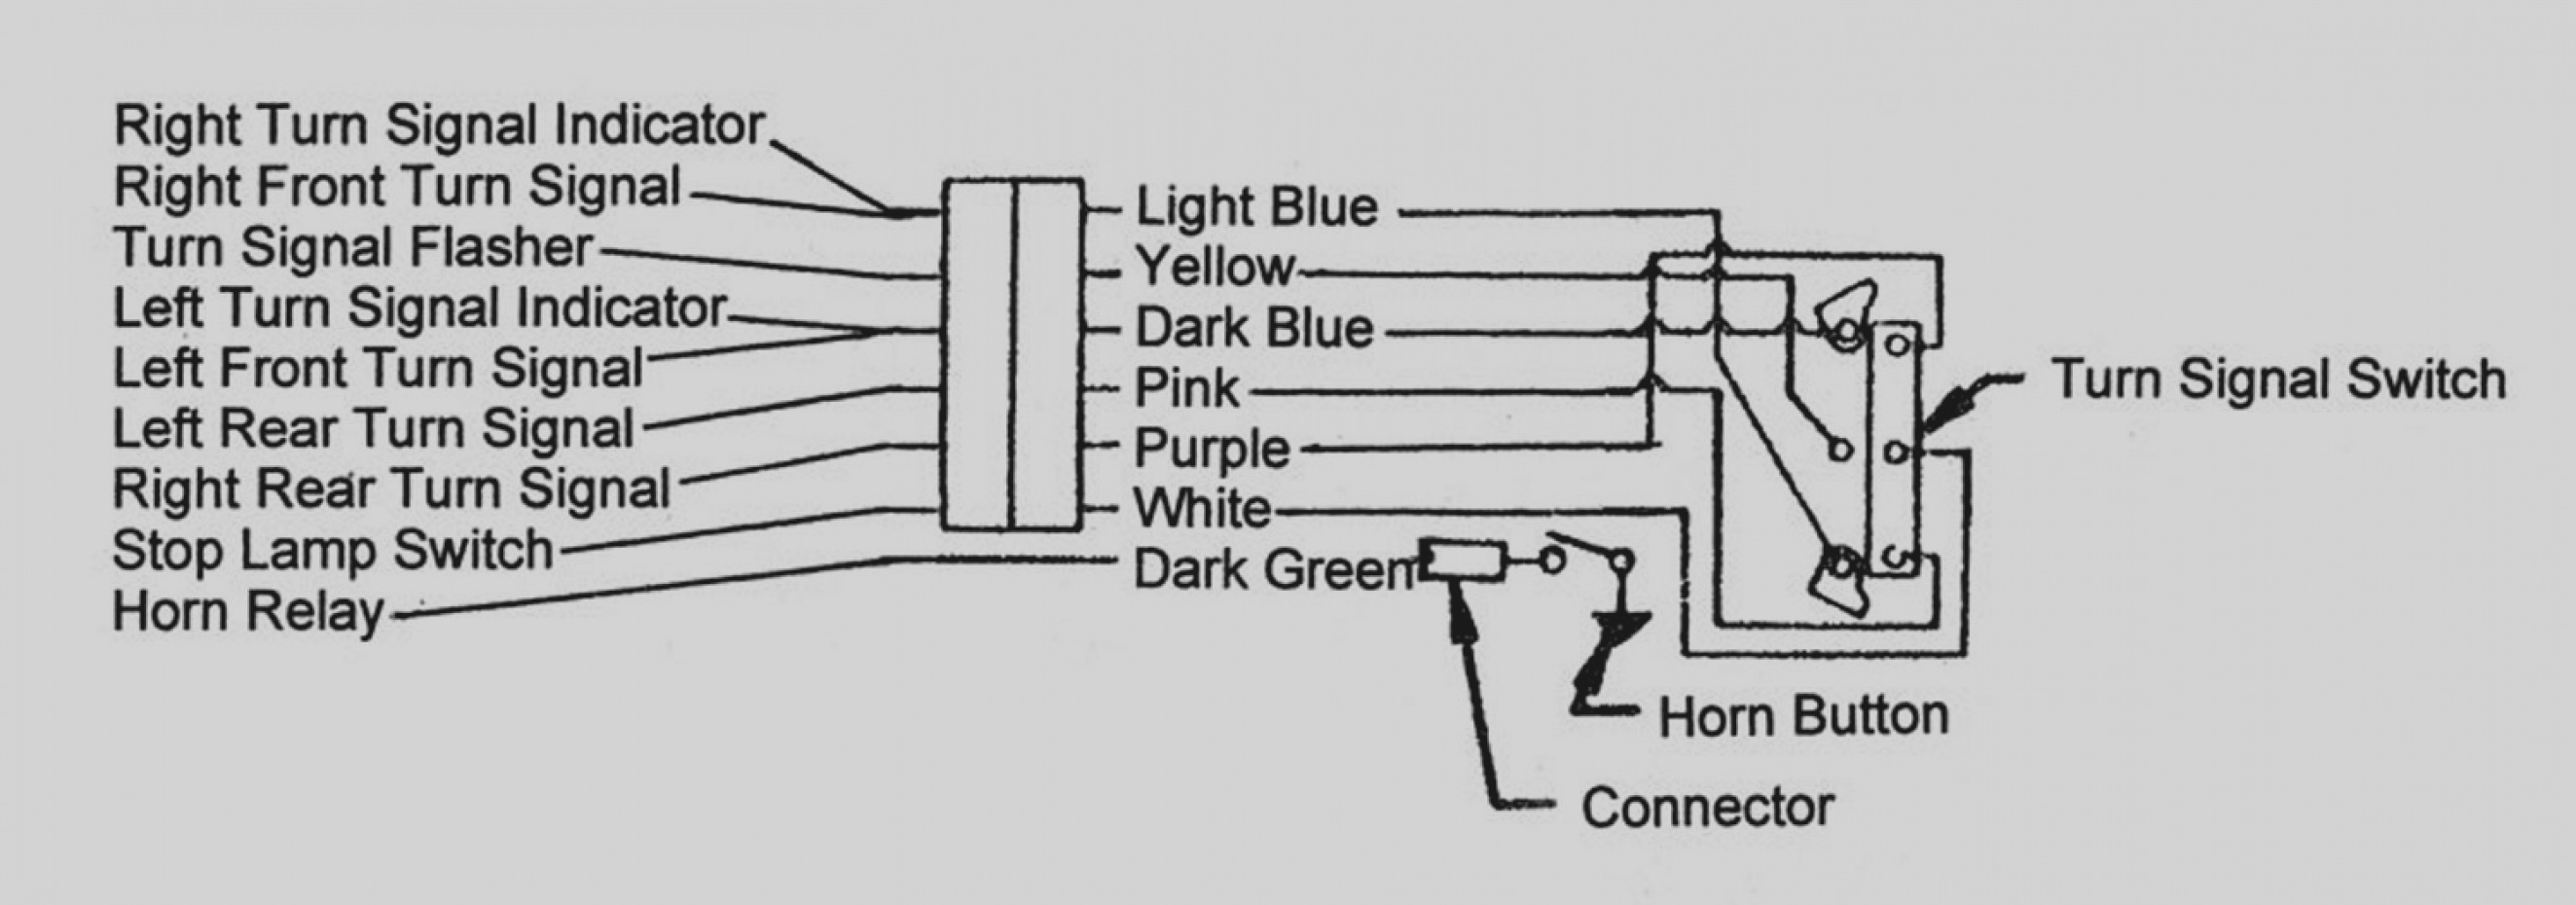 68 Impala Turn Signal Wiring Trusted Diagram For Chevy Horn Relay Free Download